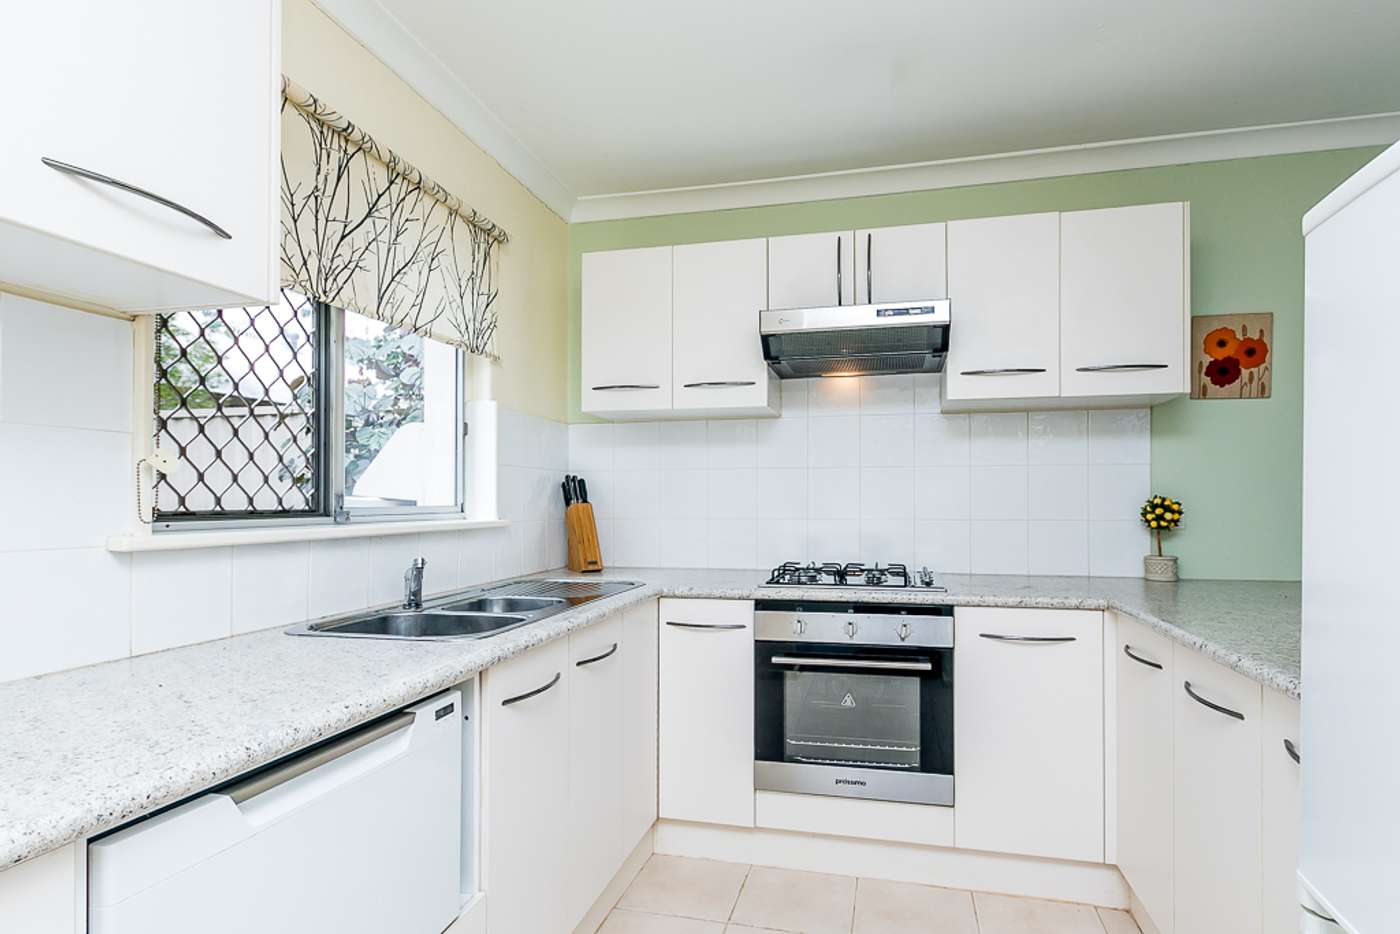 Sixth view of Homely house listing, 18 Sutherland Cl N, Guildford WA 6055